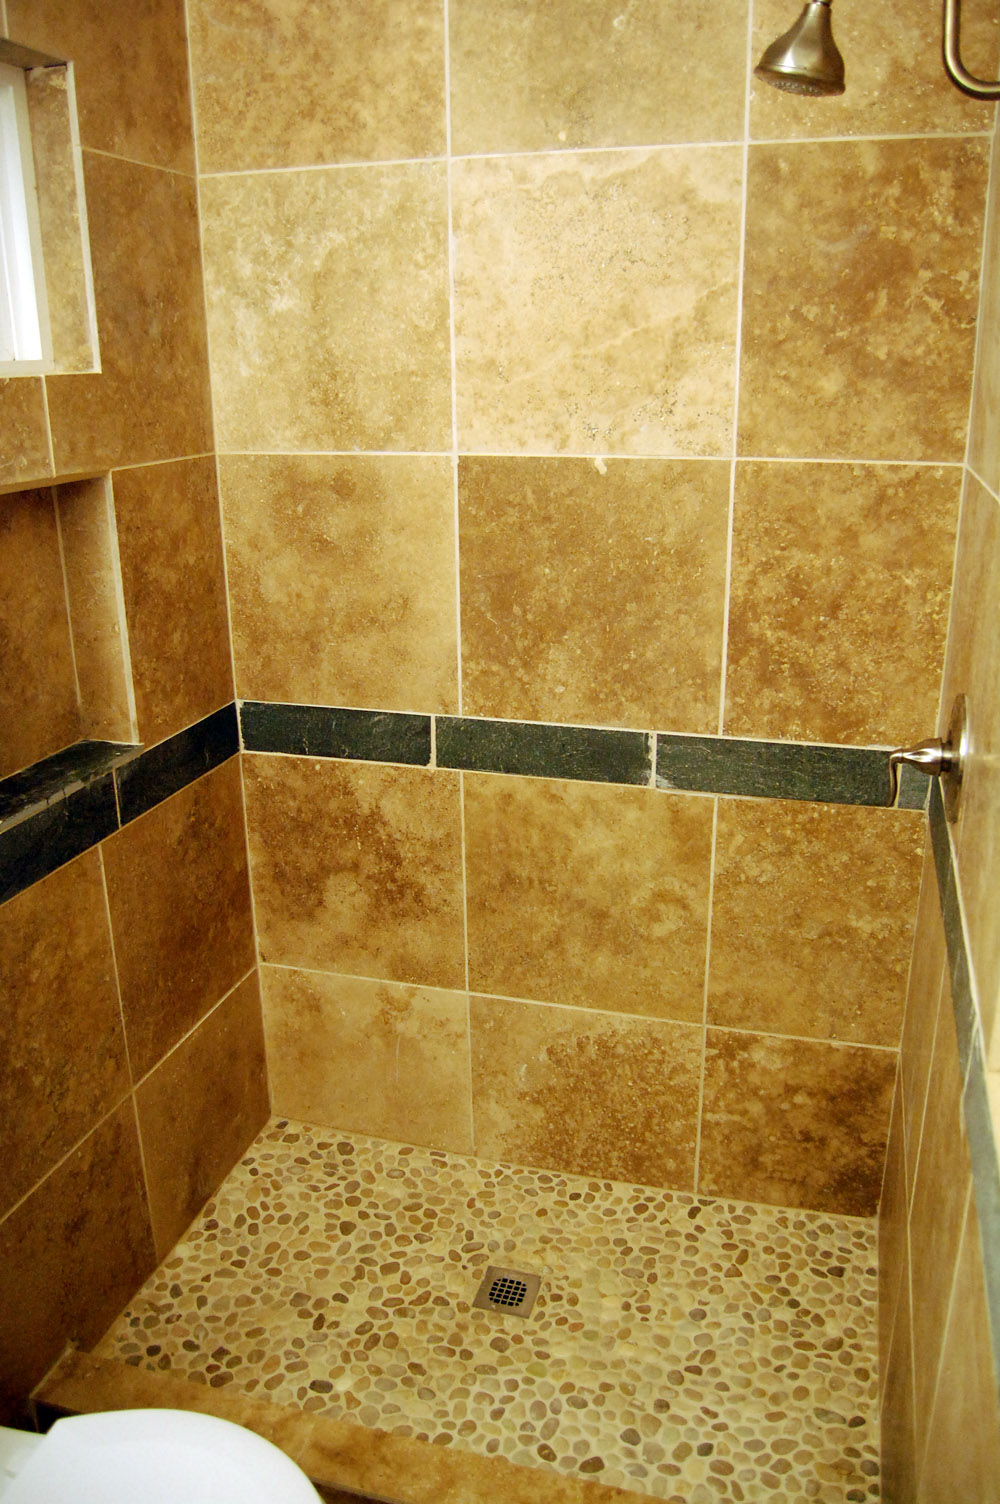 bathroom tile designs 2012. our new shower - for the duration of this trip bathroom tile designs 2012 s